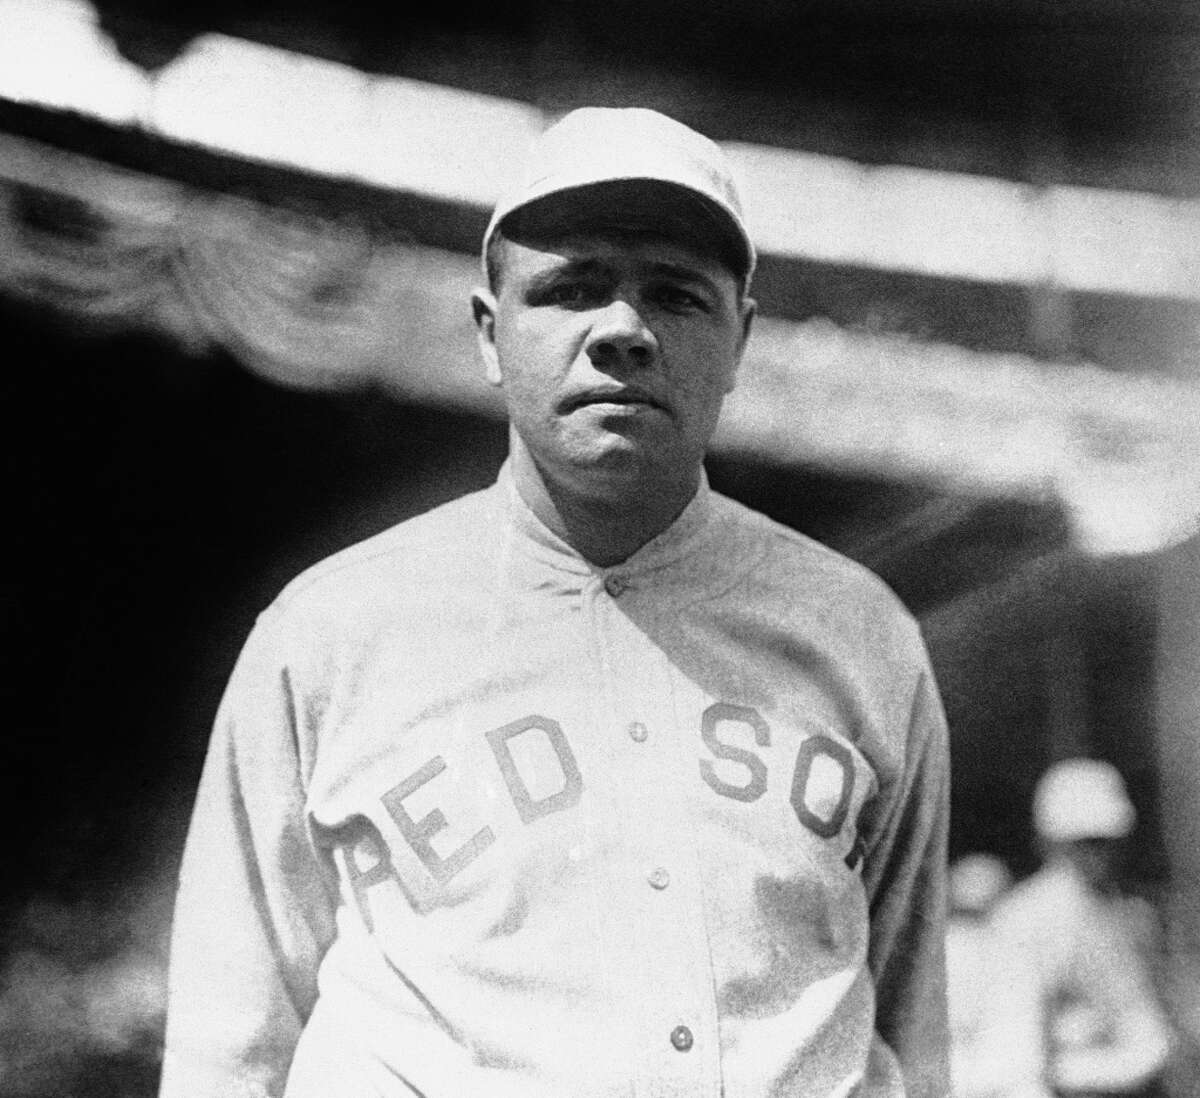 Boston Red Sox: Curse of the Bambino The Red Sox had won four World Series from 1912-18, but then sold star player Babe Ruth to the rival Yankees, ostensibly so owner Harry Frazee could finance the production of a Broadway musical called